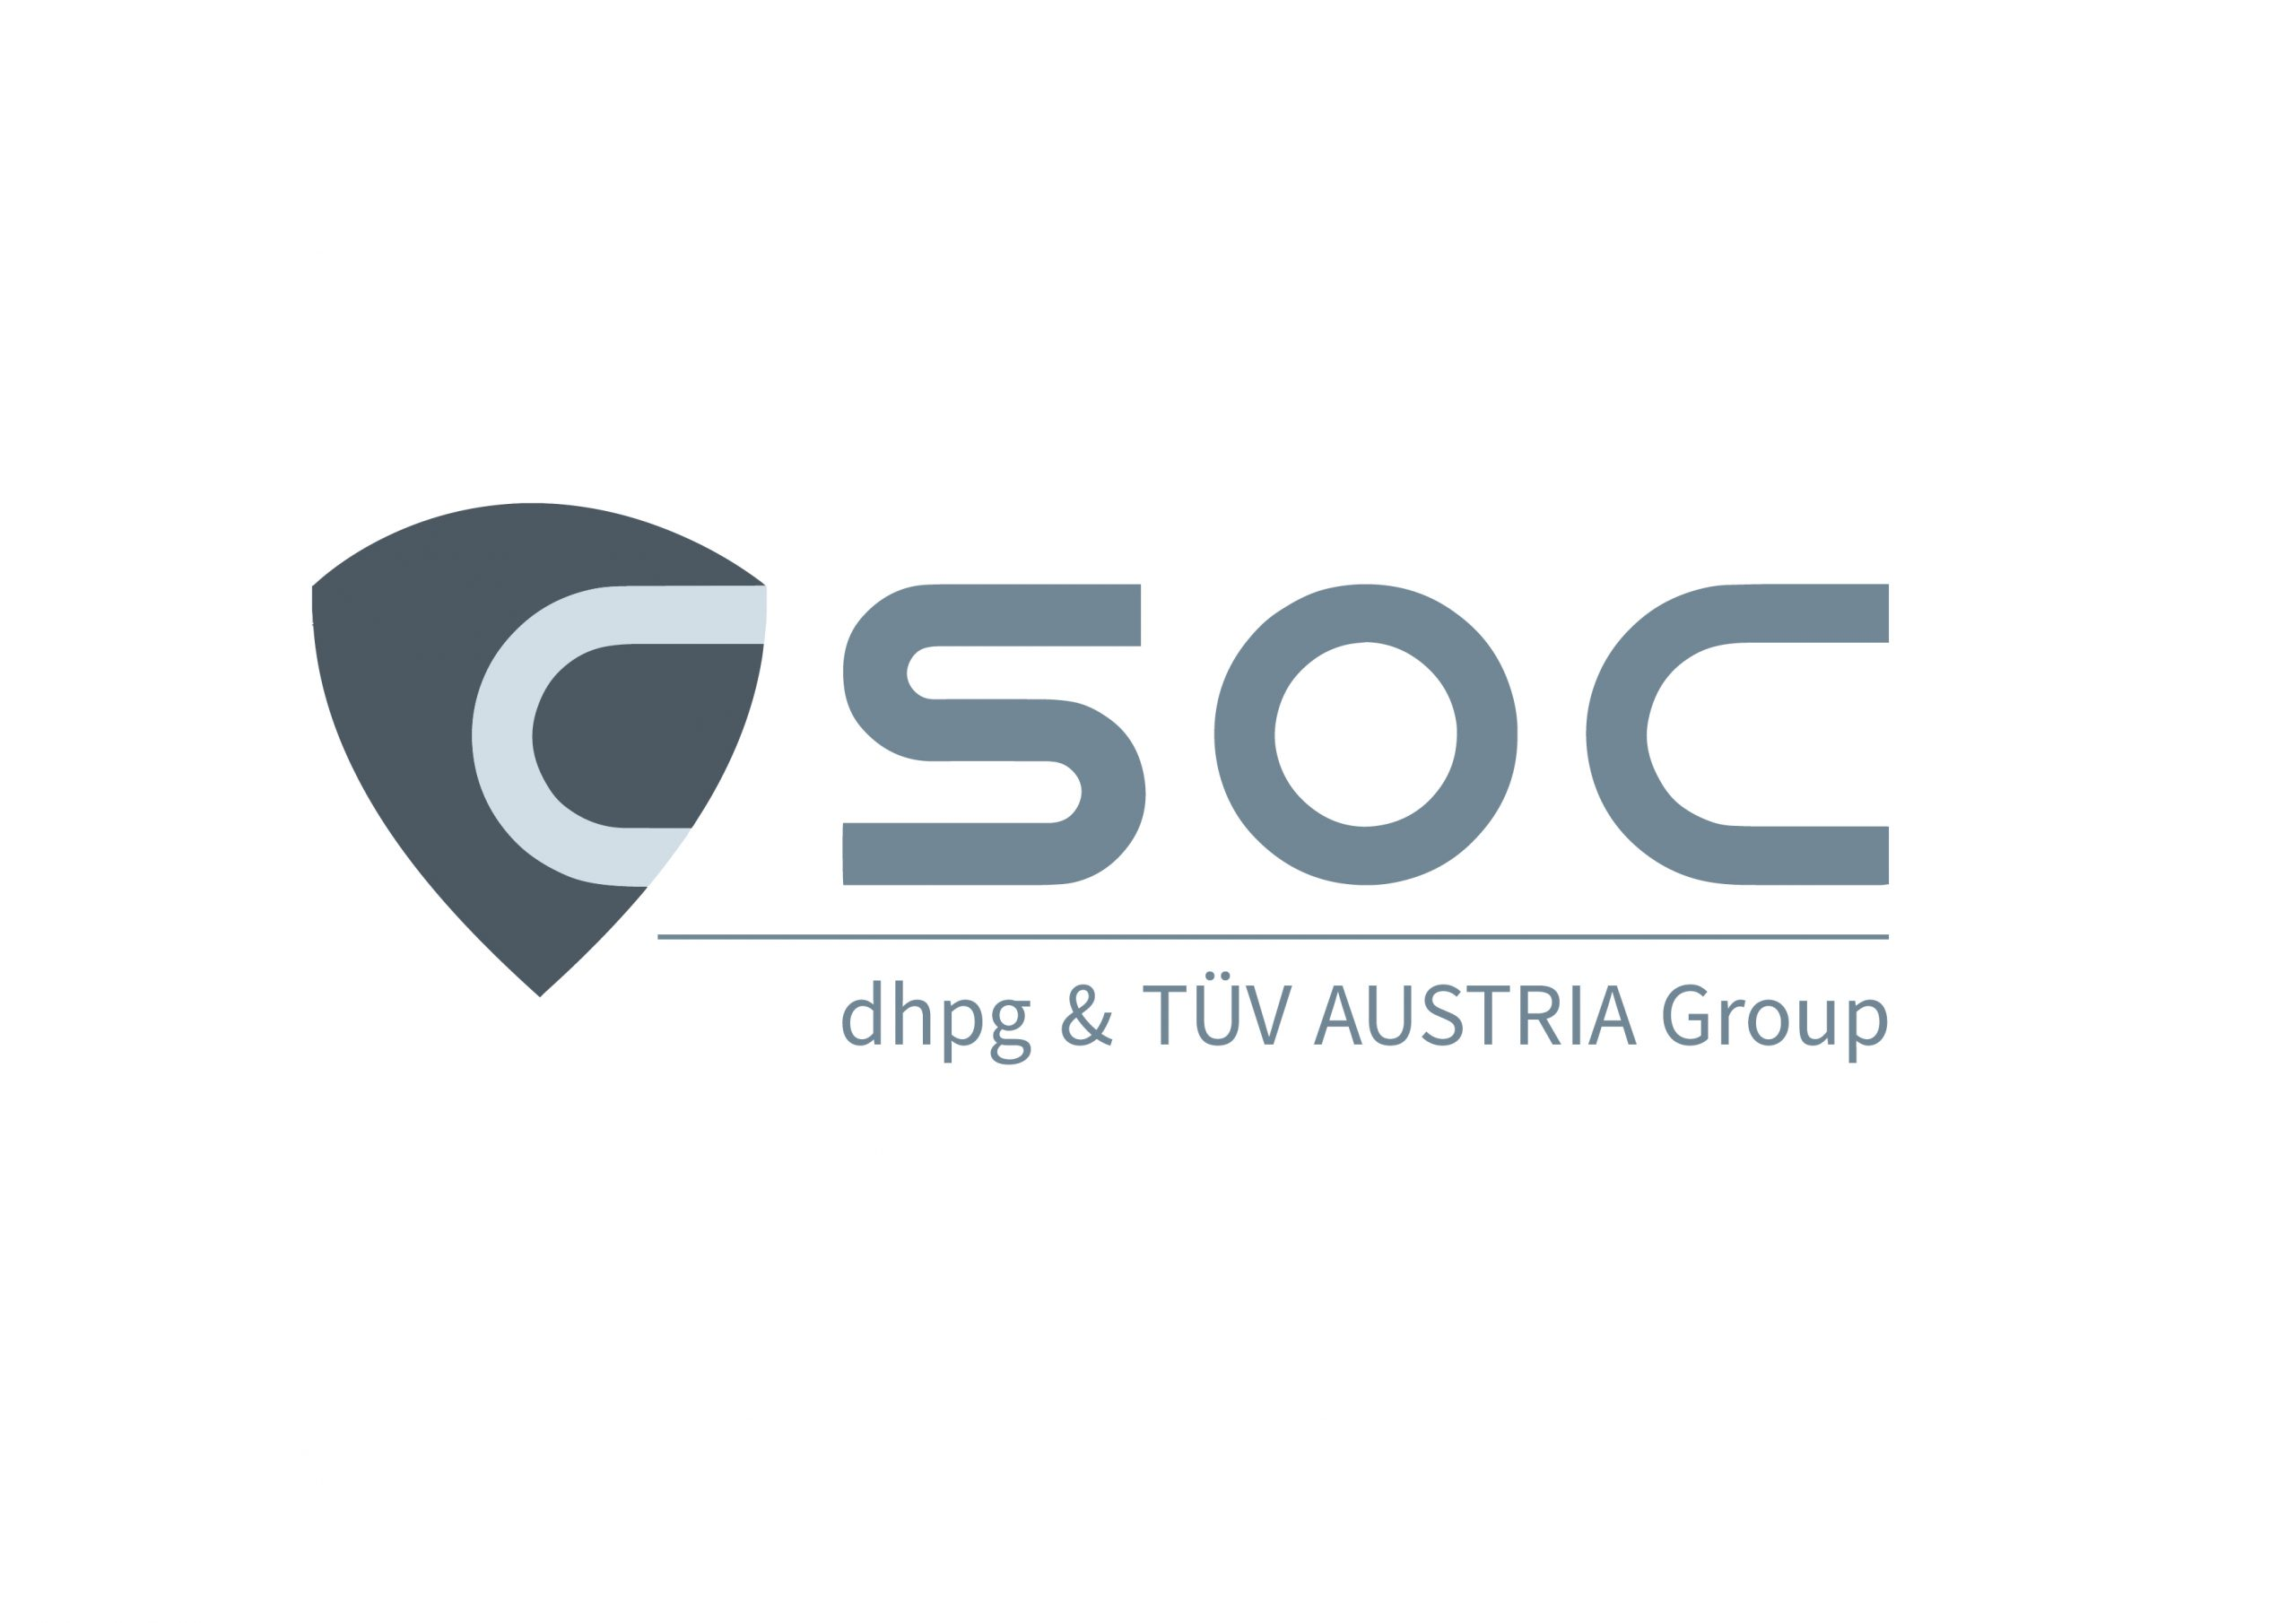 Certified Security Operations Center GmbH